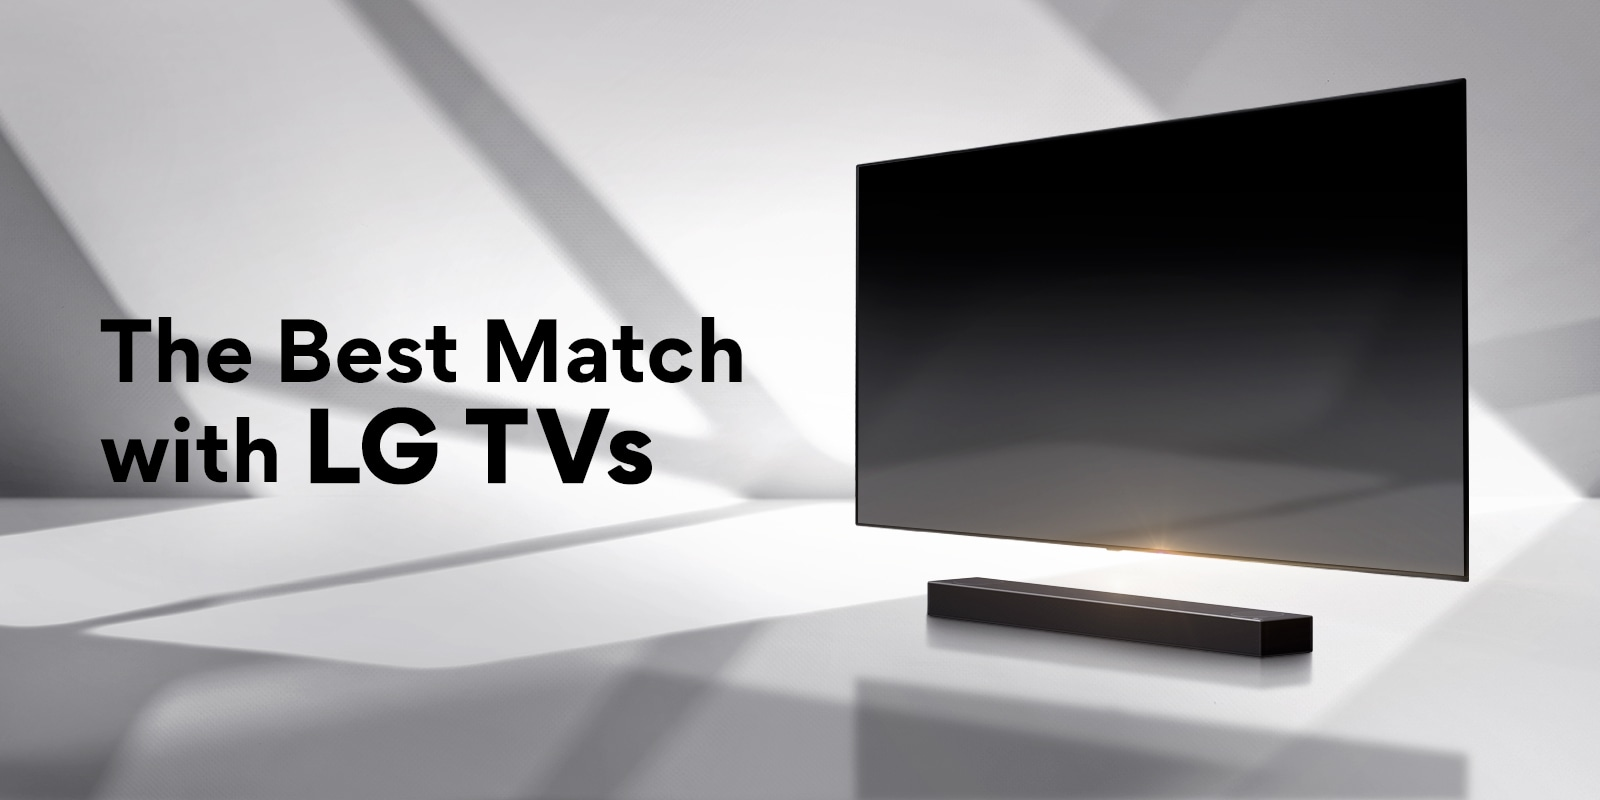 A soundbar and a TV are placed on a white floor and there is a shadow coming from outside right behind.